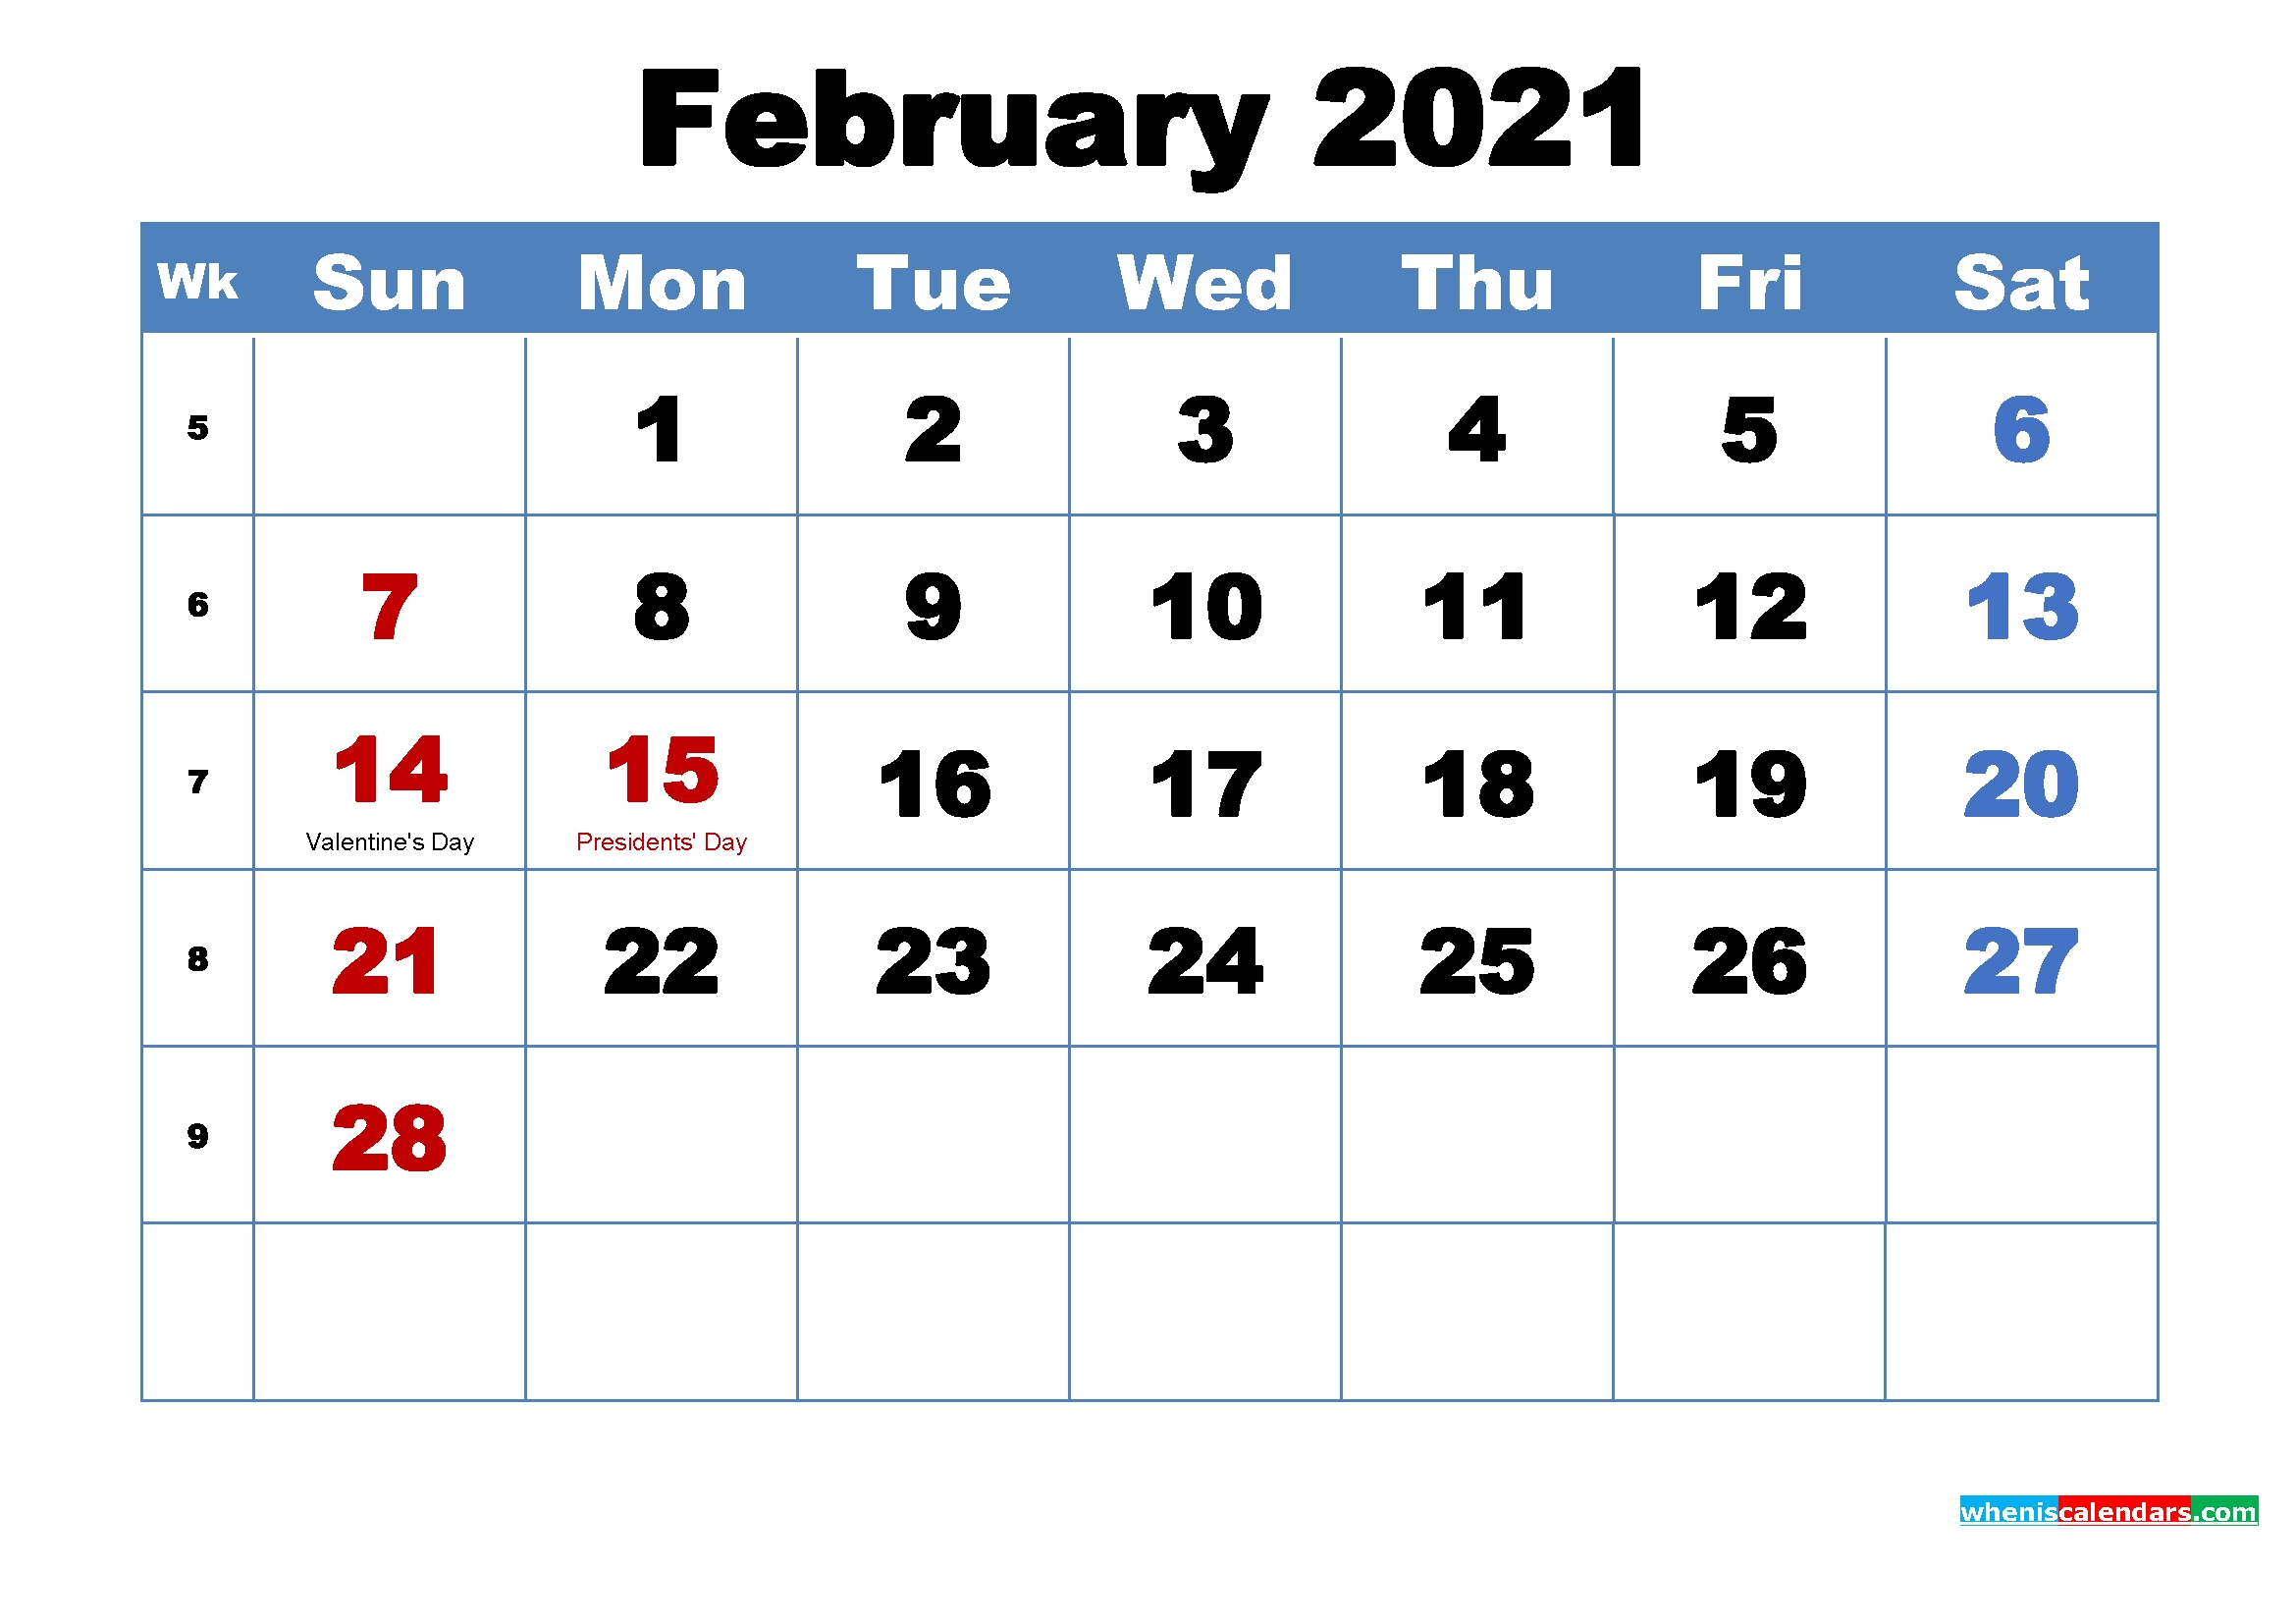 30 Free February 2021 Calendars For Home Or Office - Onedesblog-Free Printable Monthly Calendar With Holidays 2021